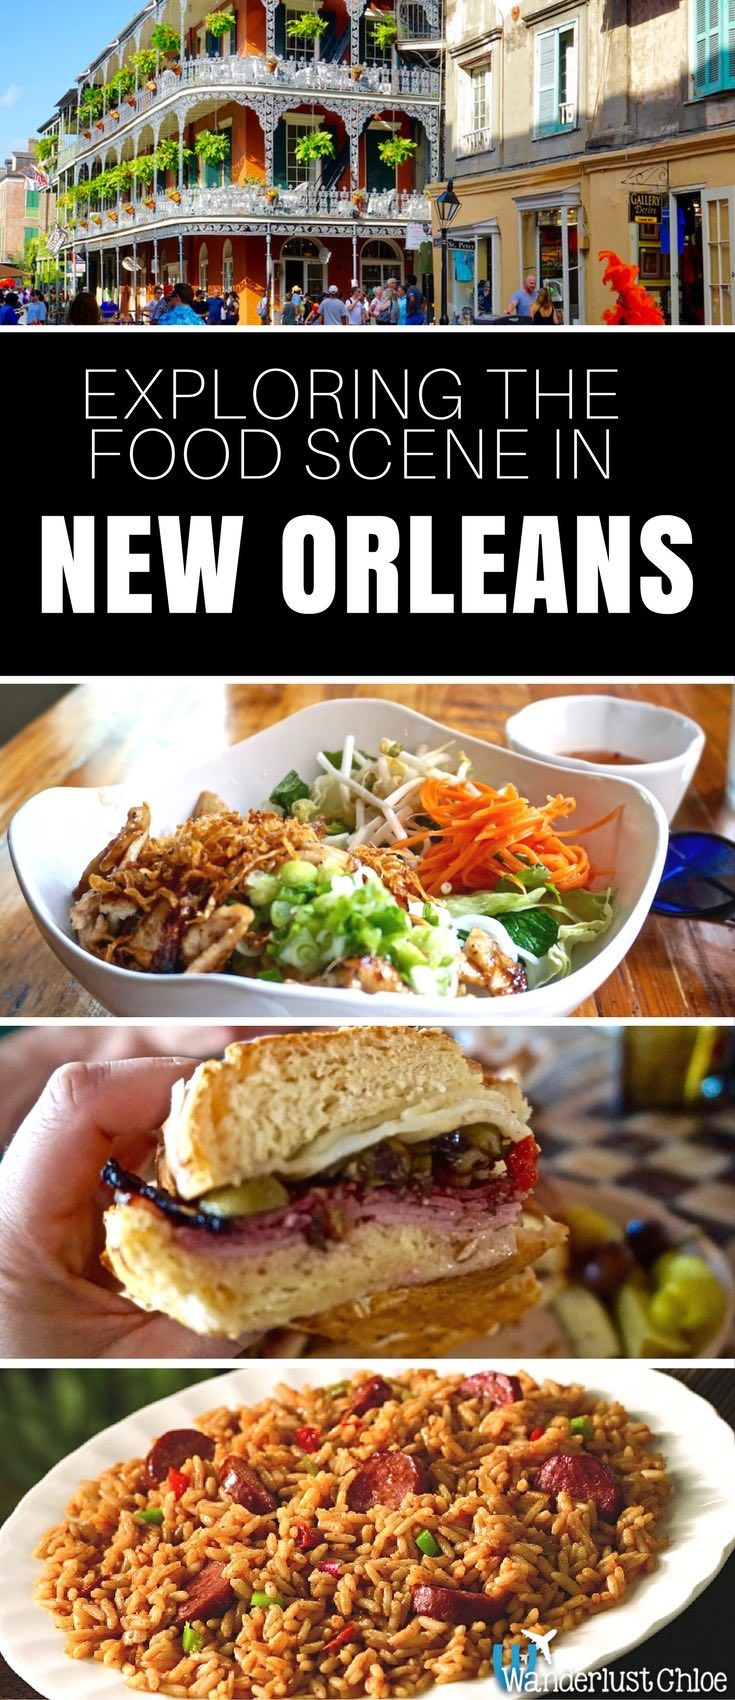 Delve into the world of beignets, po' boys, gumbo, mufulettas and crawfish in the French Quarter of New Orleans – one of the food capitals of the world!